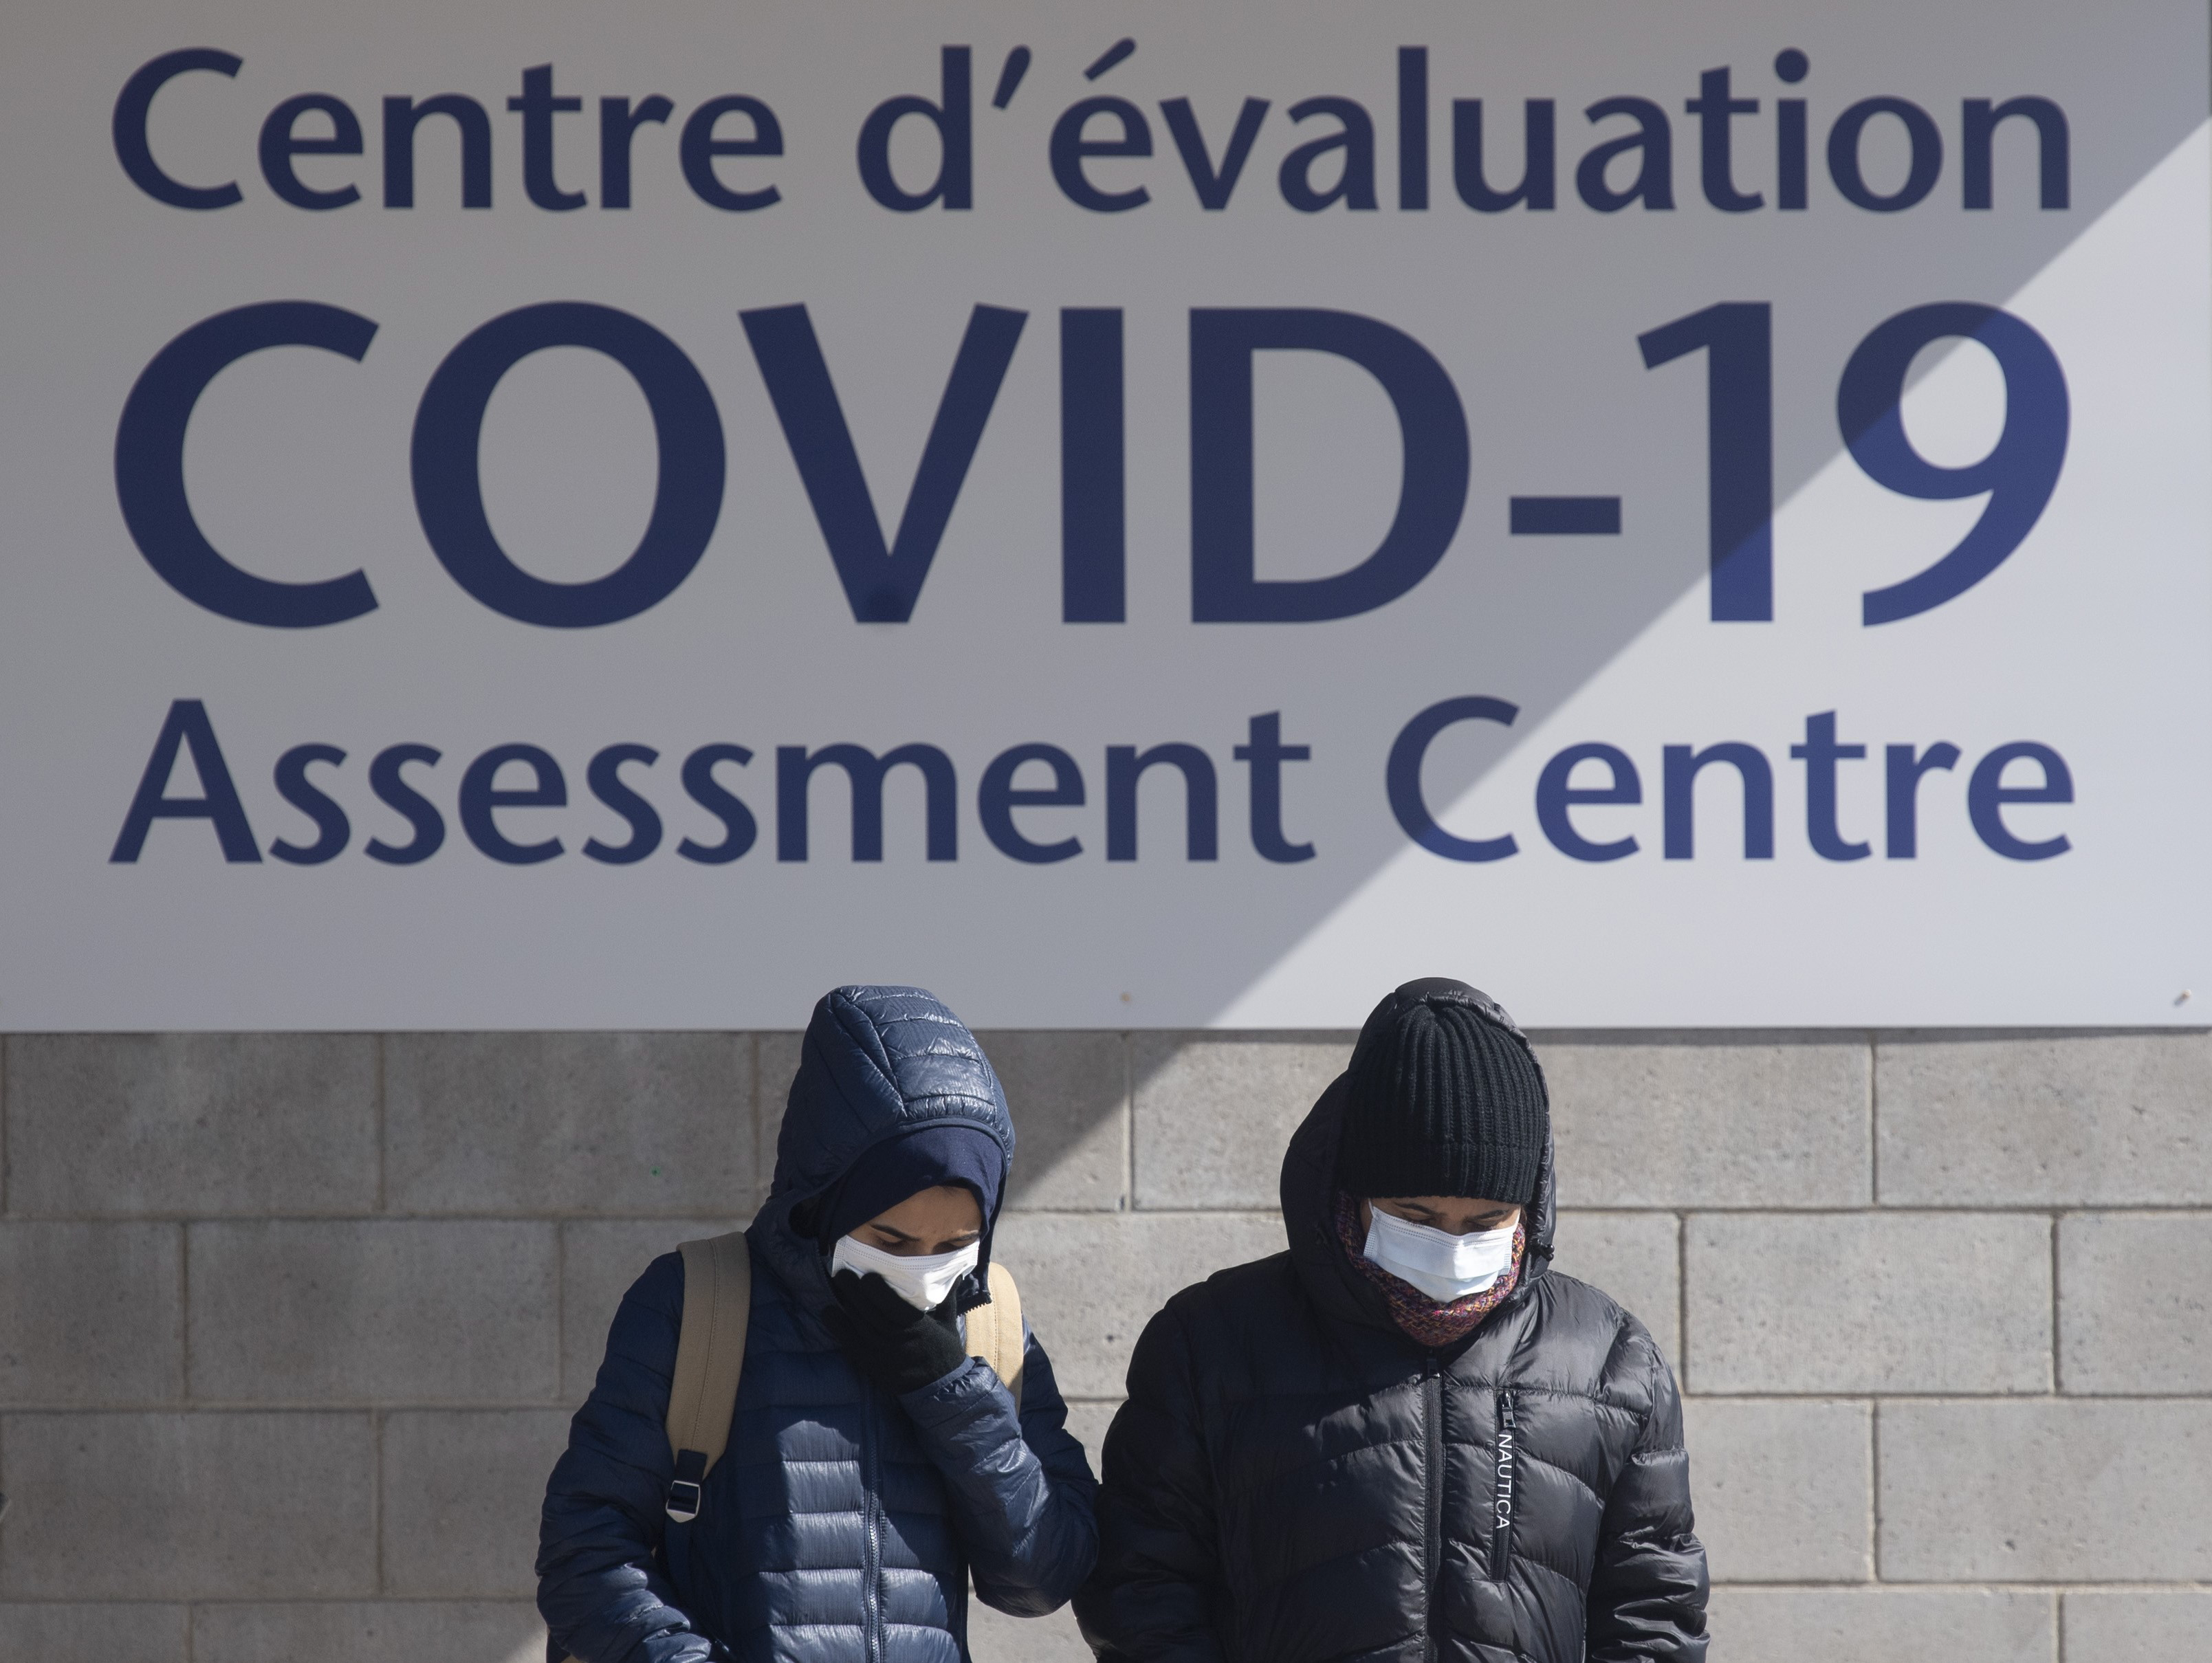 Over 500 COVID-19 cases linked to public places in Canada